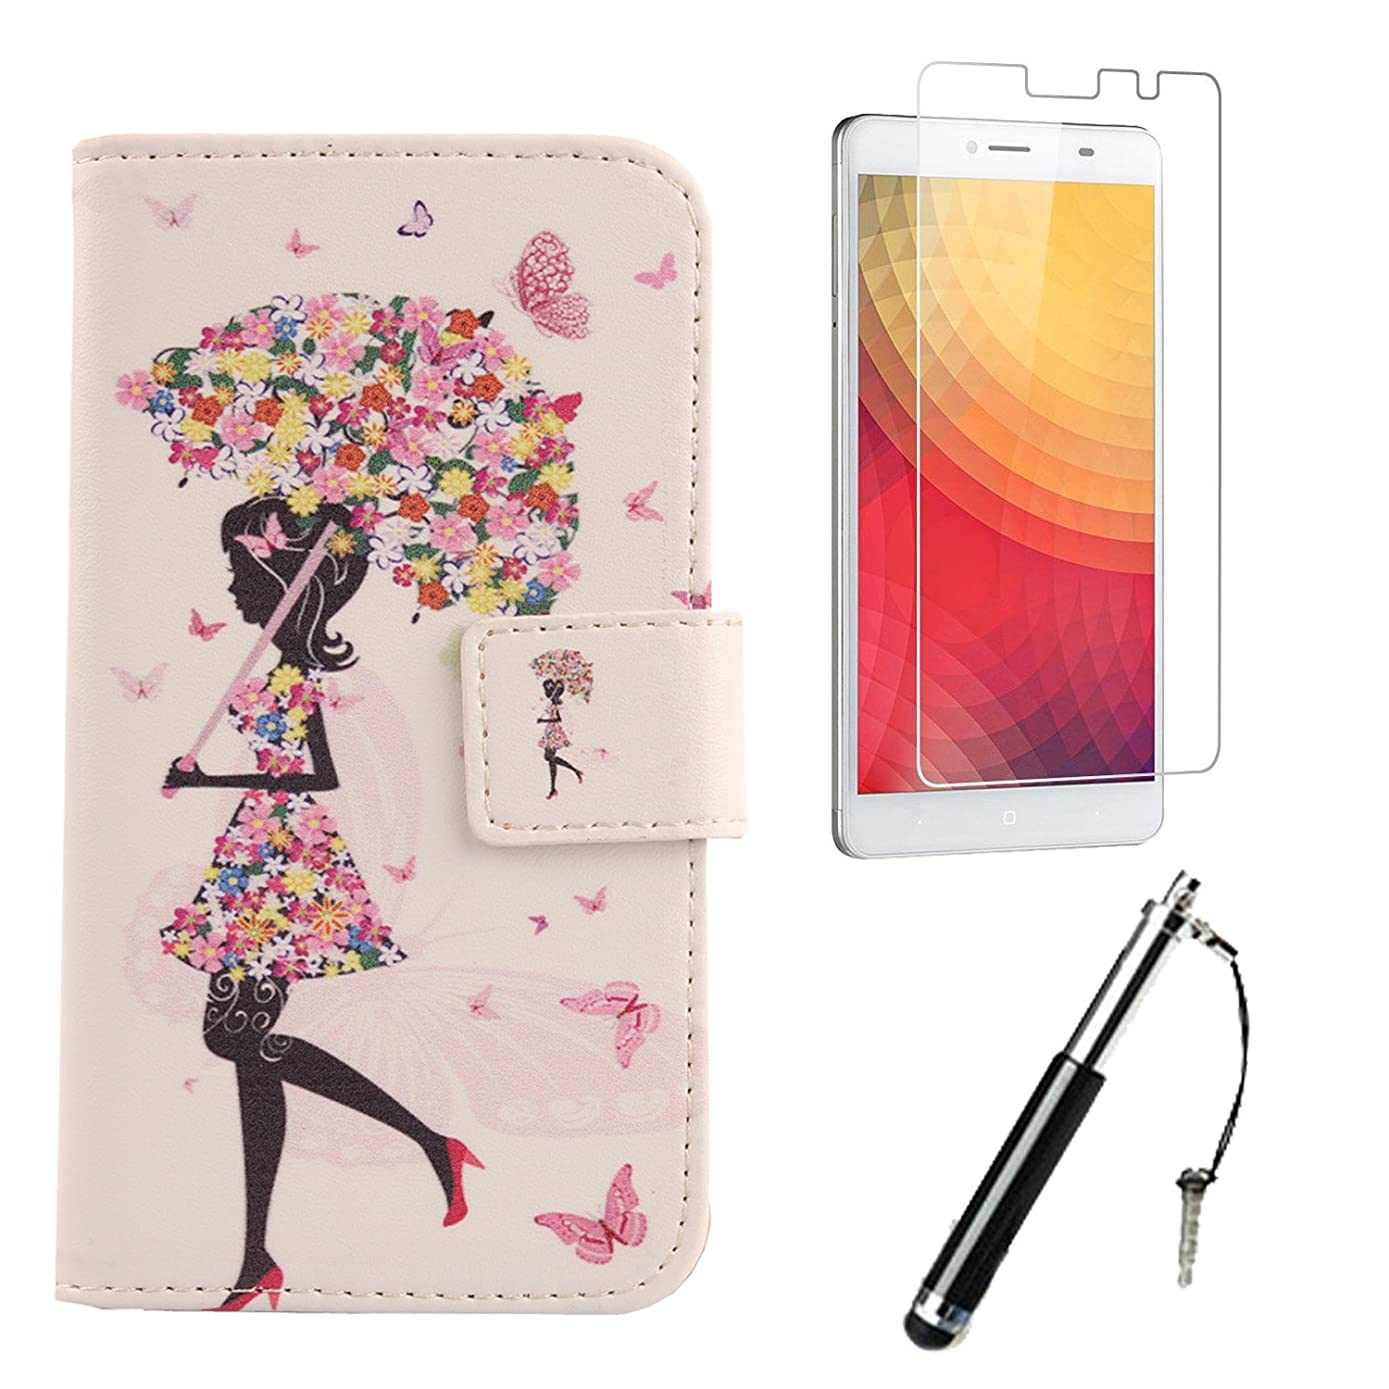 Lankashi 3in1 Set Pattern Design PU Leather Wallet Flip Cover Skin Protection Case With Tempered Glass Screen Protector Flim Stylus Touch Writing Pen For Doogee Y6 Max 6.5